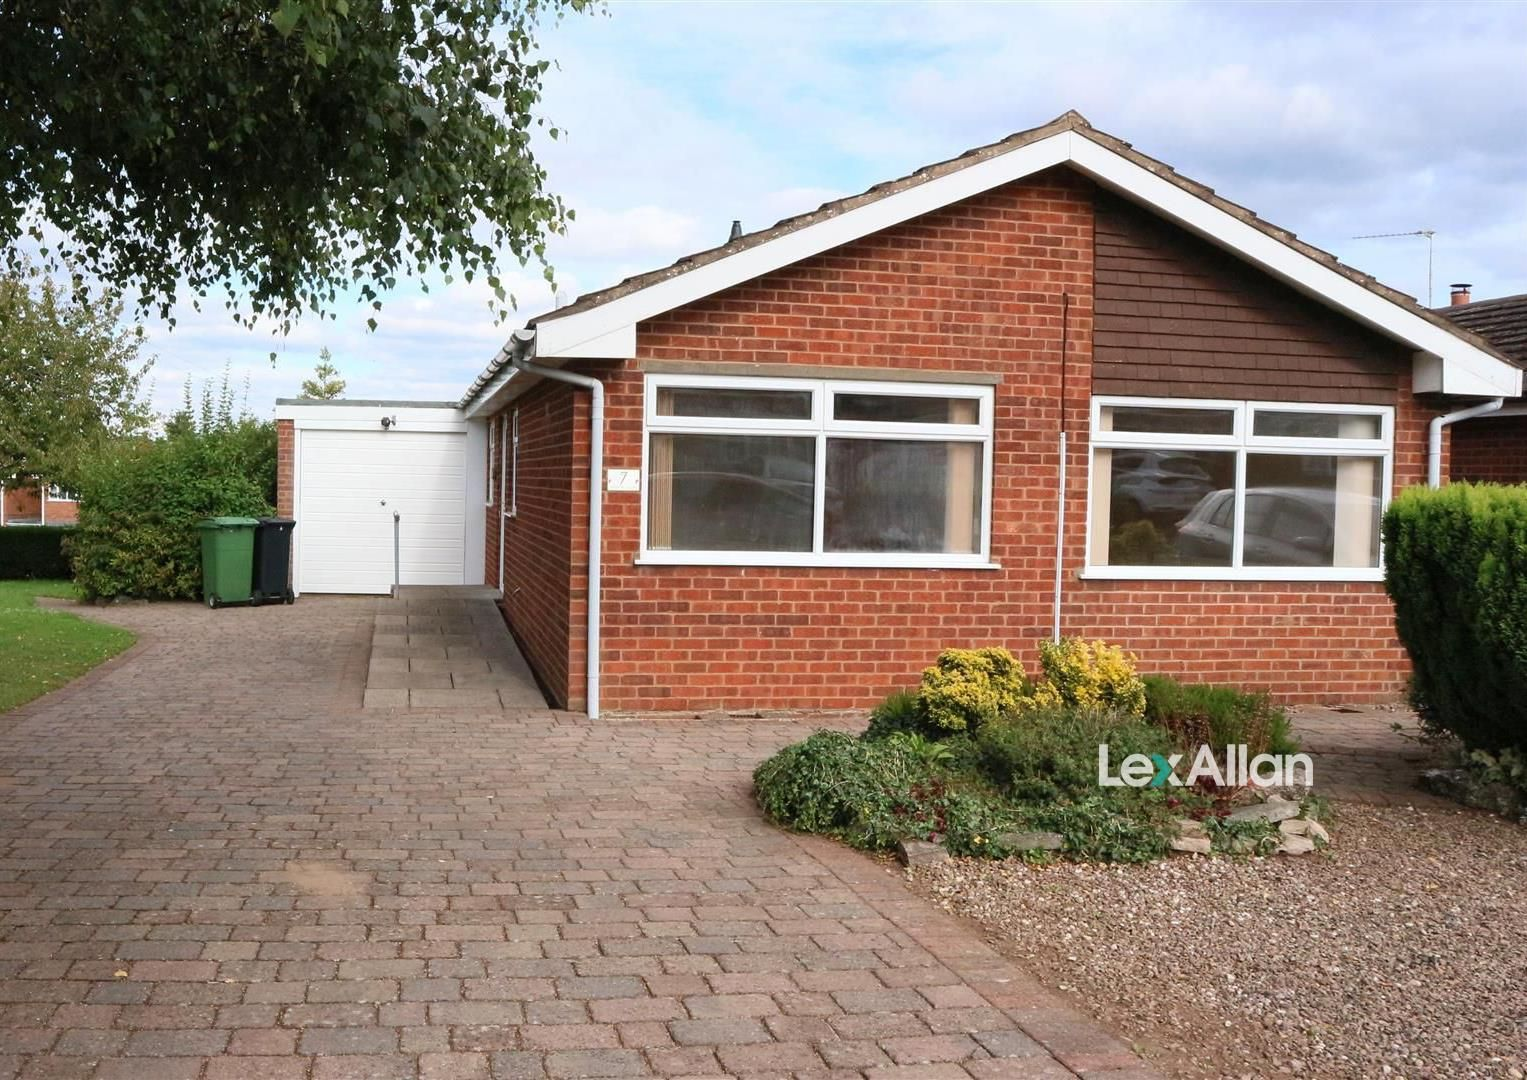 2 bed detached-bungalow for sale, DY8